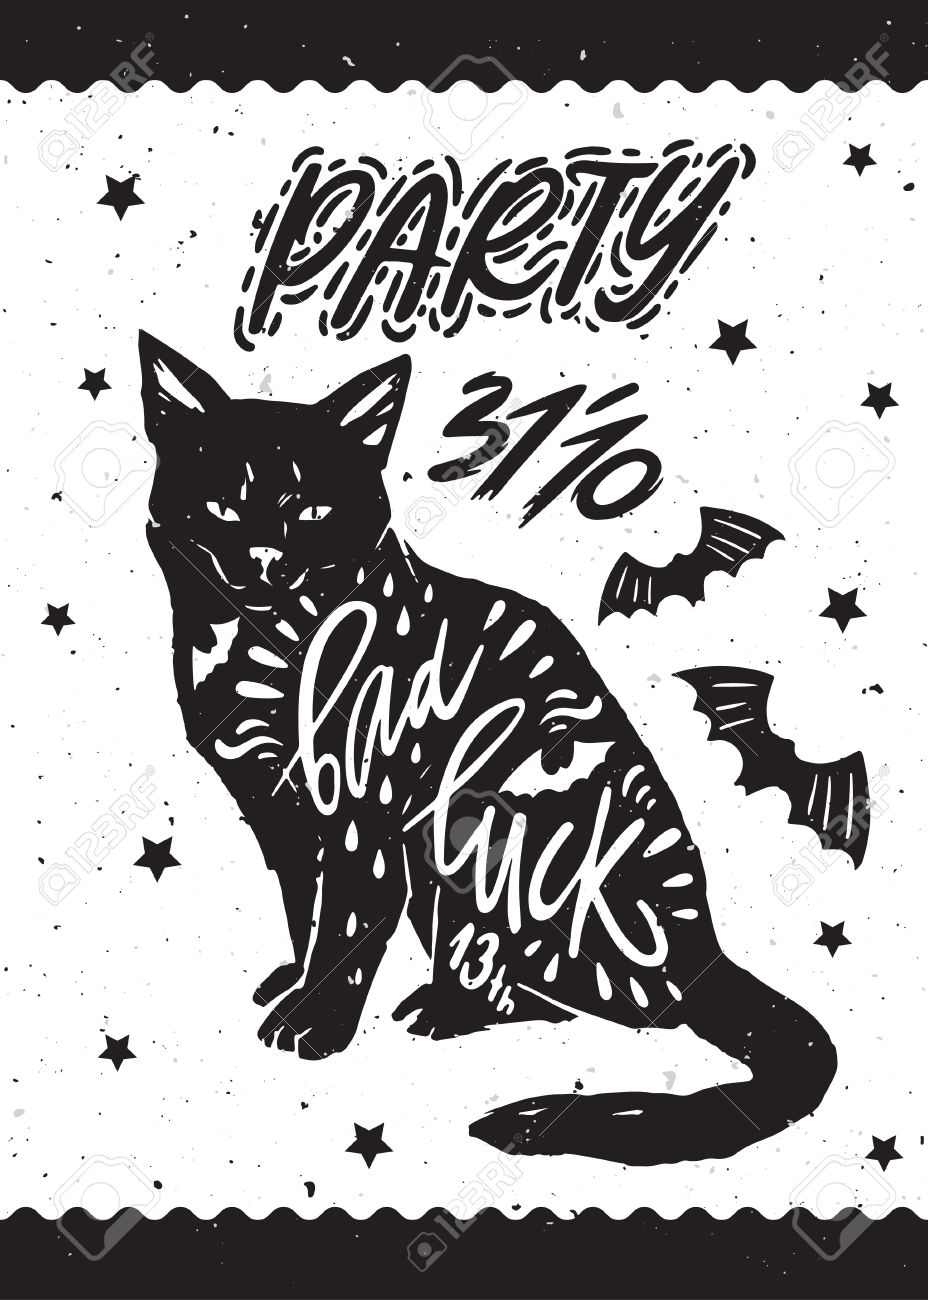 Cat Stock Quote Typography Poster For Helloween Party With Black Cat Bat